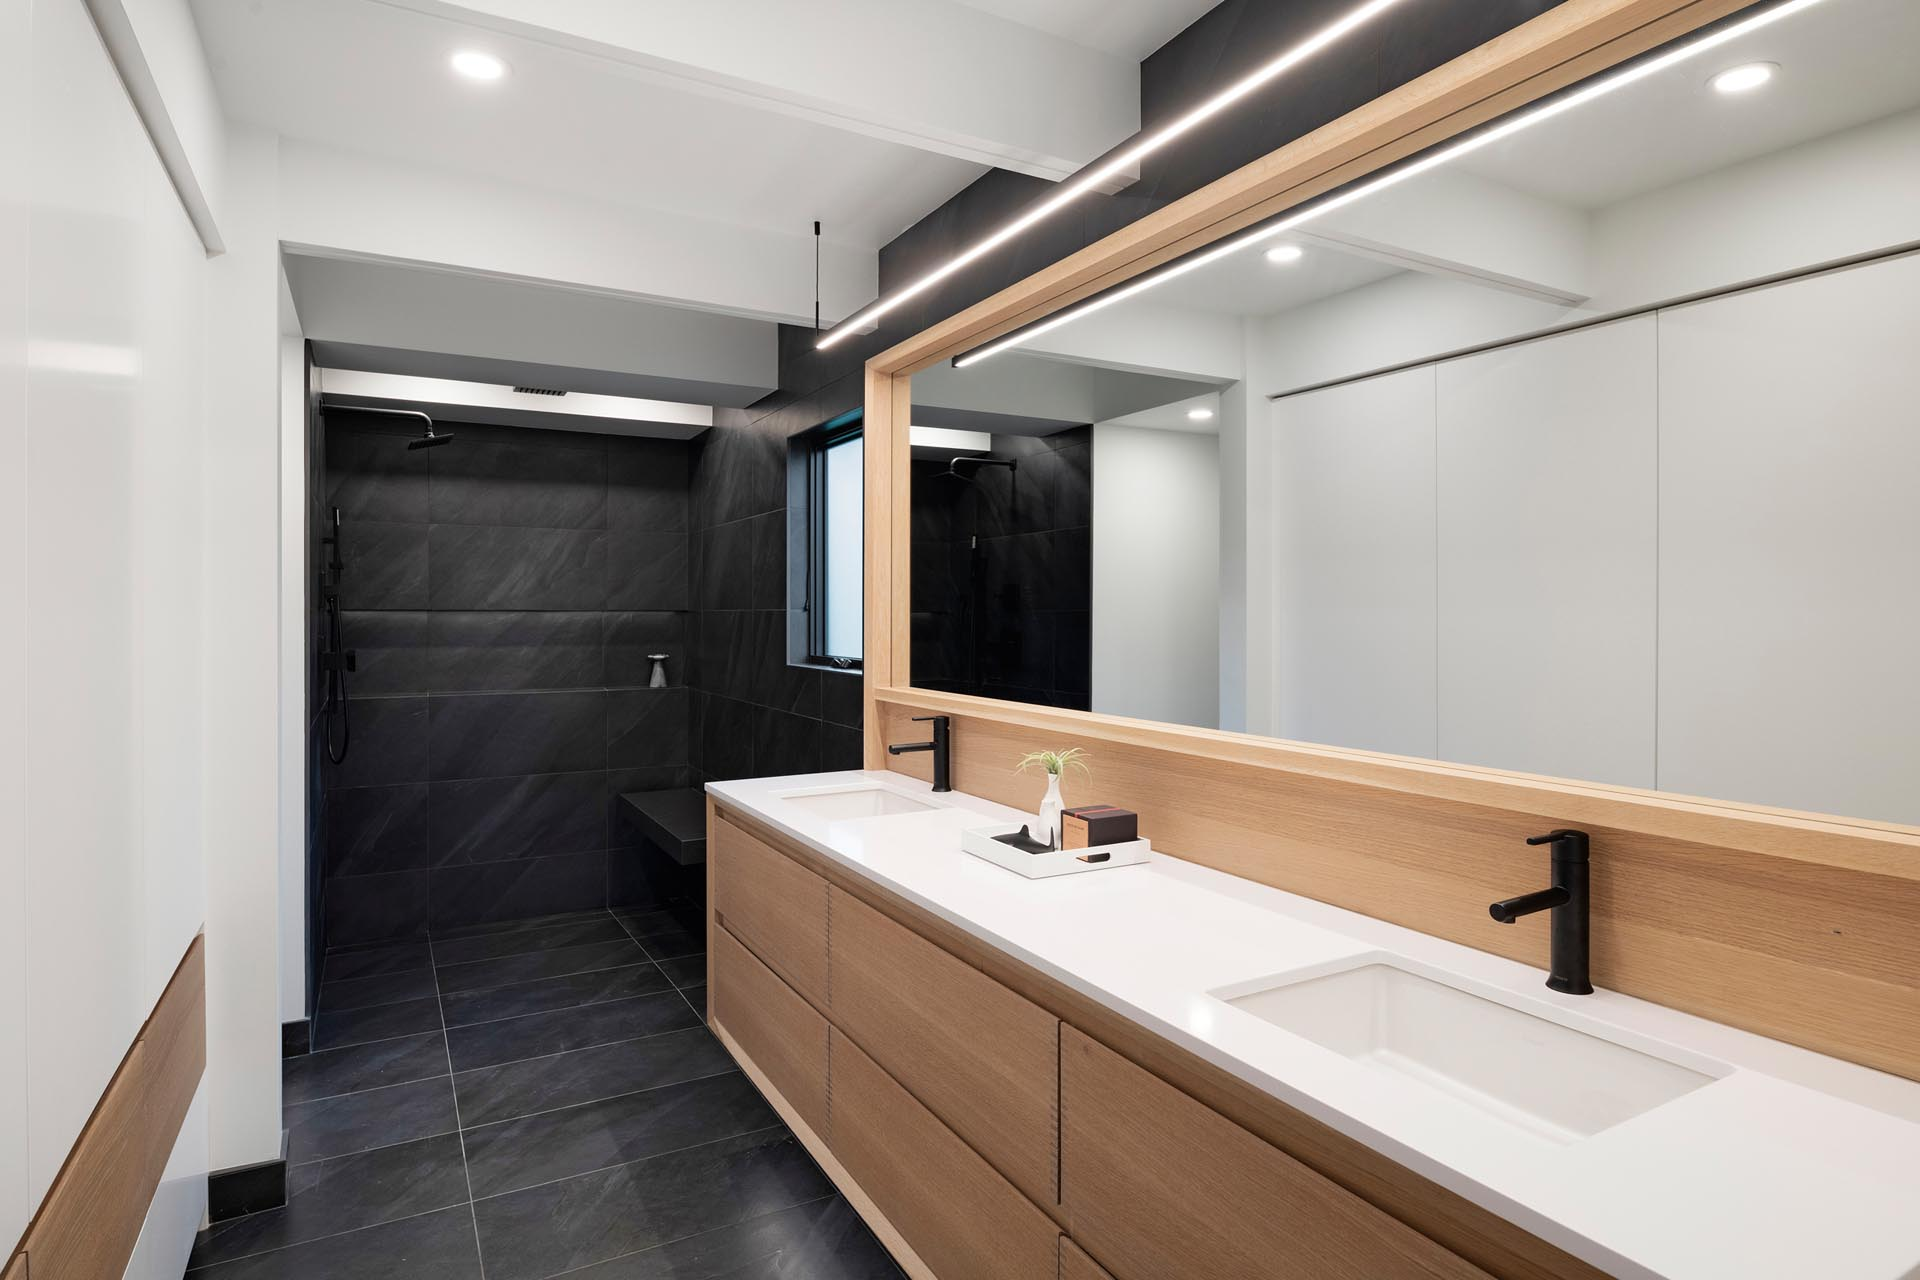 In this mdoern master bathroom, a long wood vanity is topped with a white counter and undermount sinks, while black tile has been used for flooring and the shower.